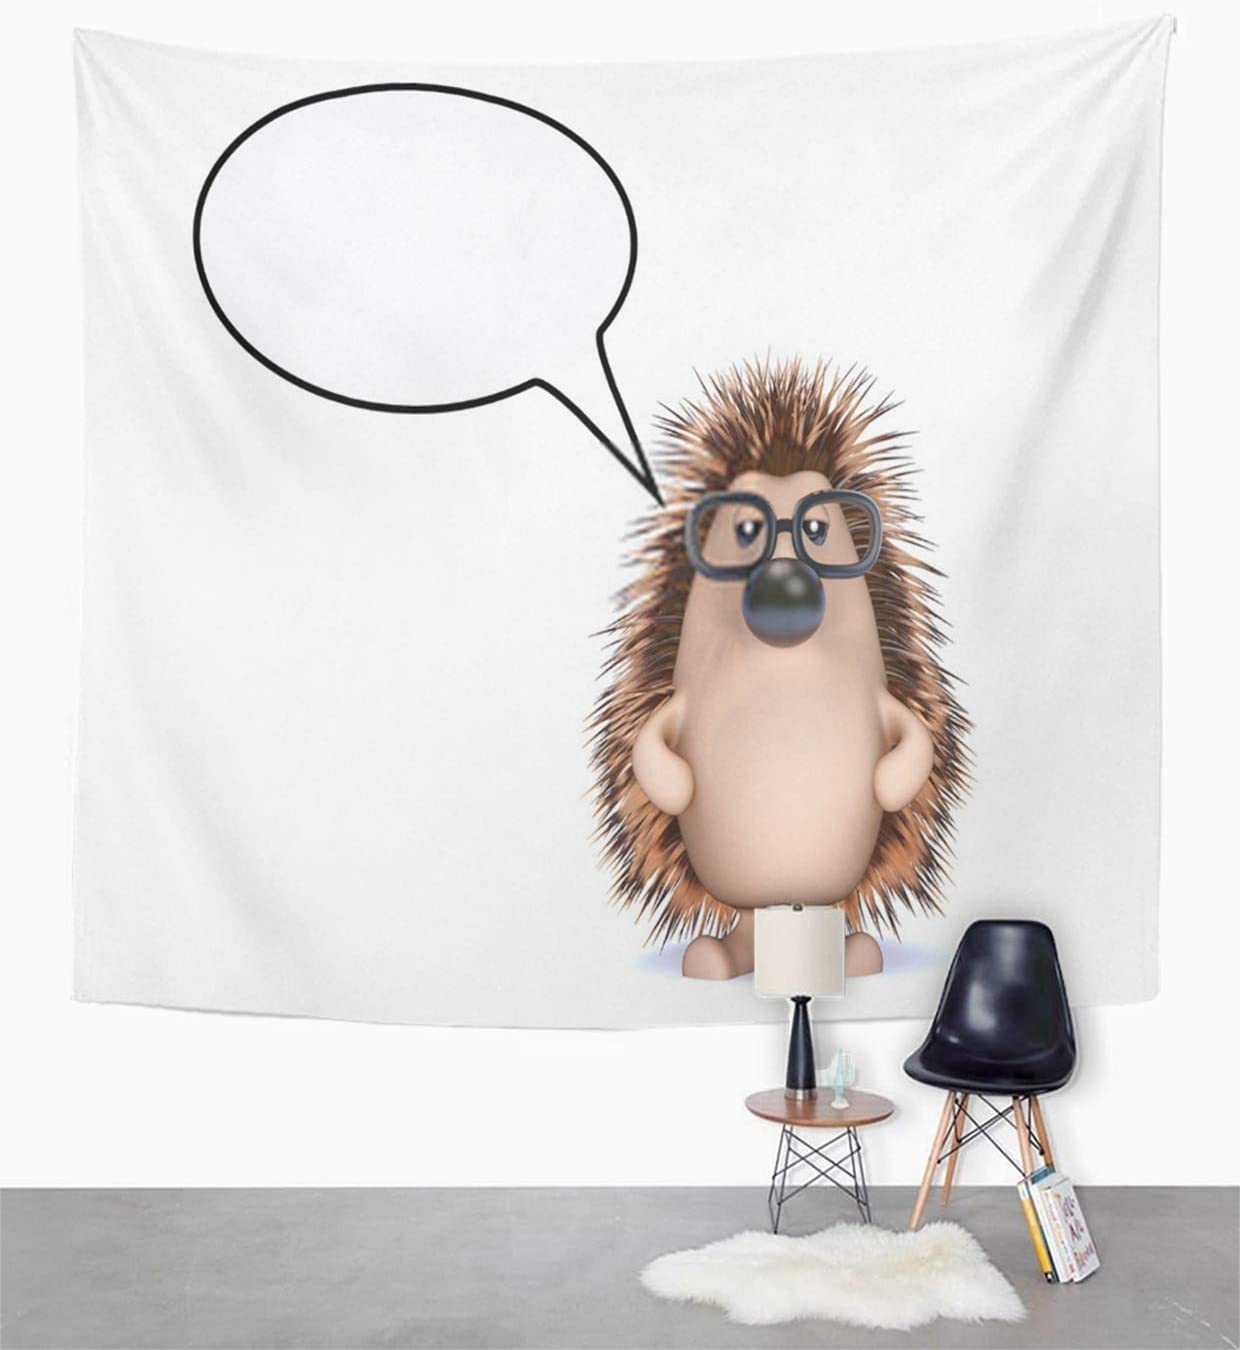 Houlor Tapestry Cute Hedgehog Talks A Lot Three Dimensional Speak Wildlife Speech Bubble Wall Hanging Art Print Home Polyester Decoration Apartment Bedroom Living Room Dorm Decor 60x80 Inches